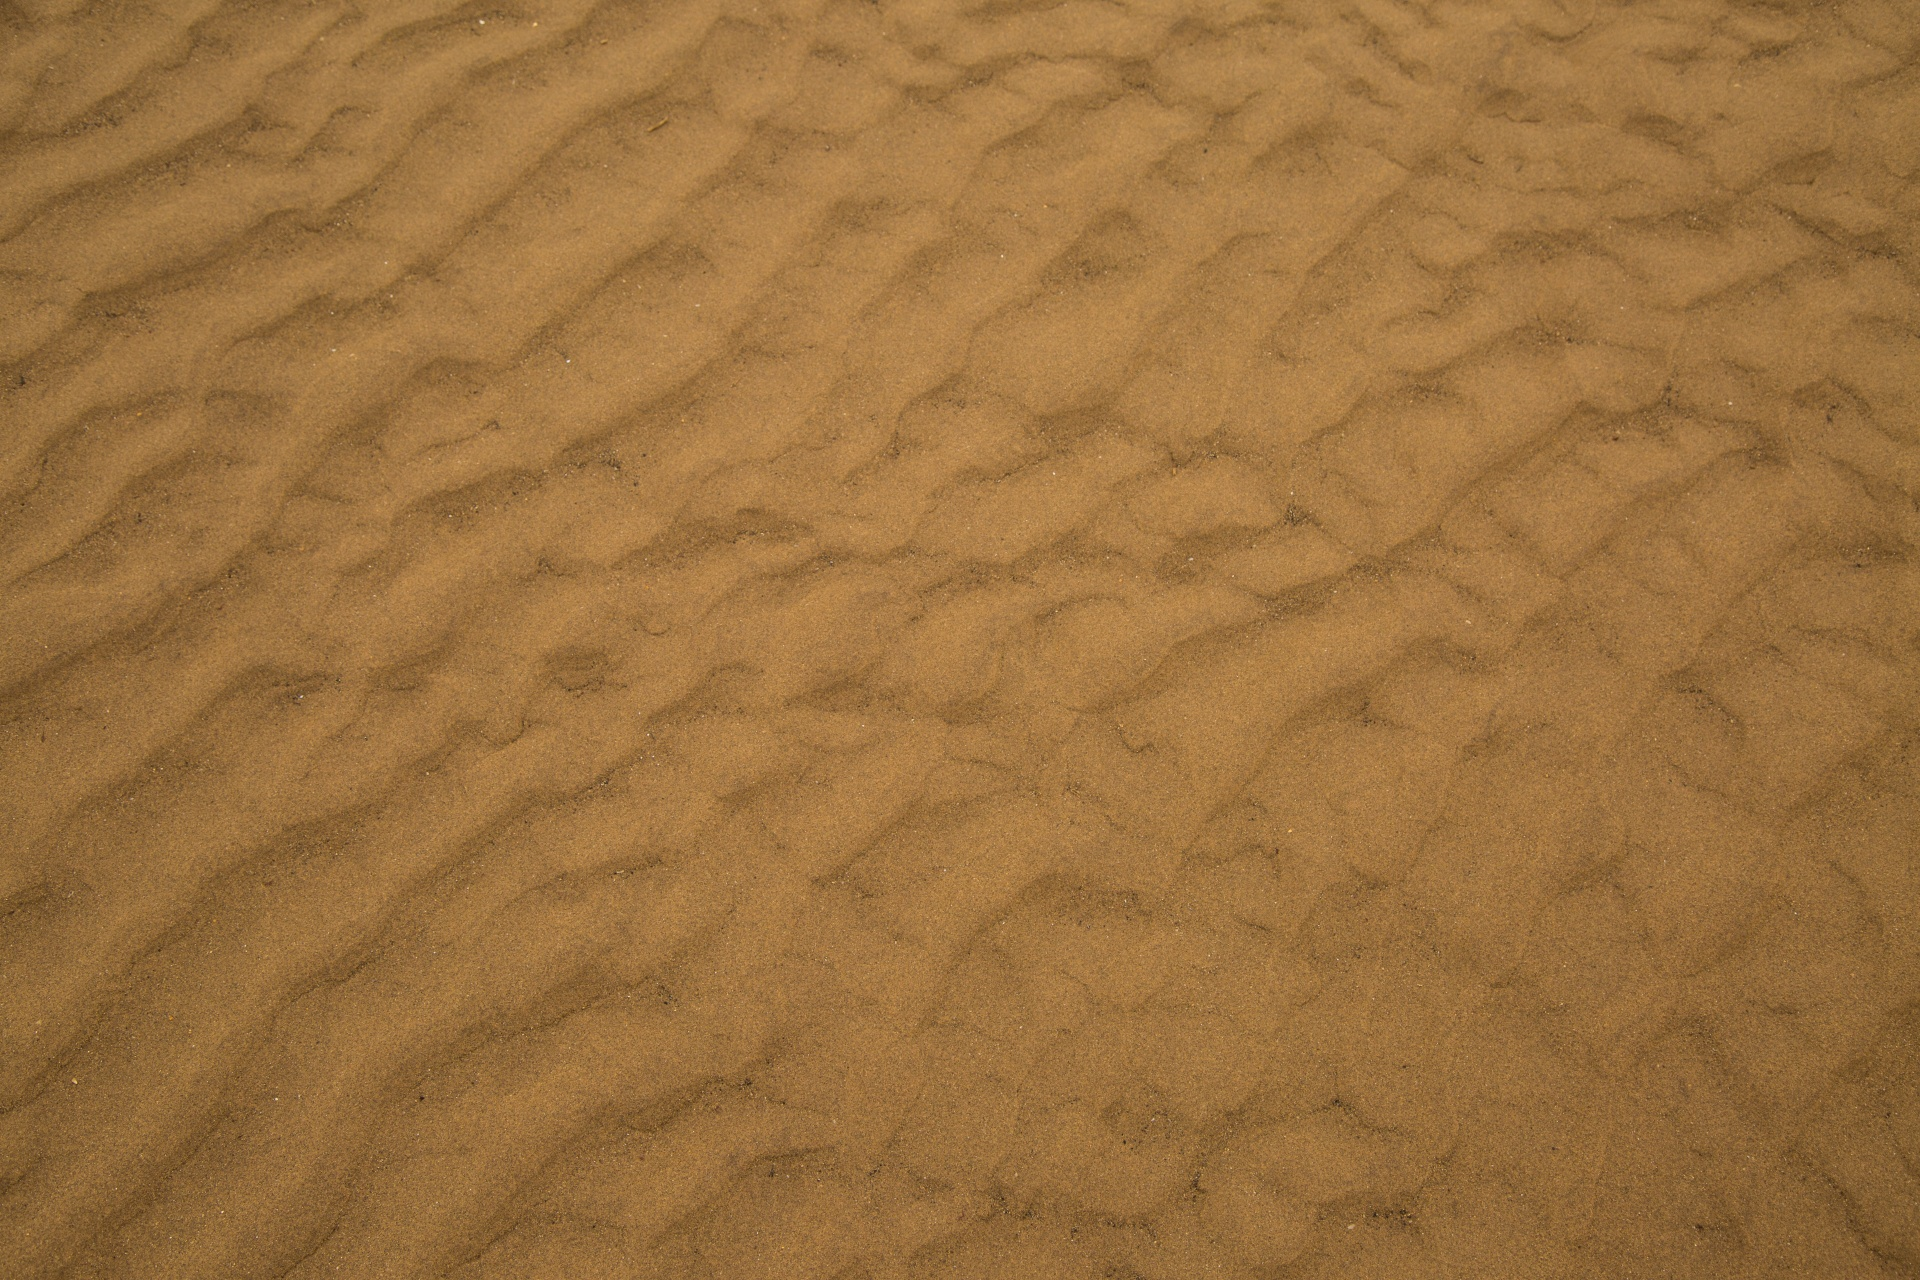 Sand Texture Free Stock Photo - Public Domain Pictures